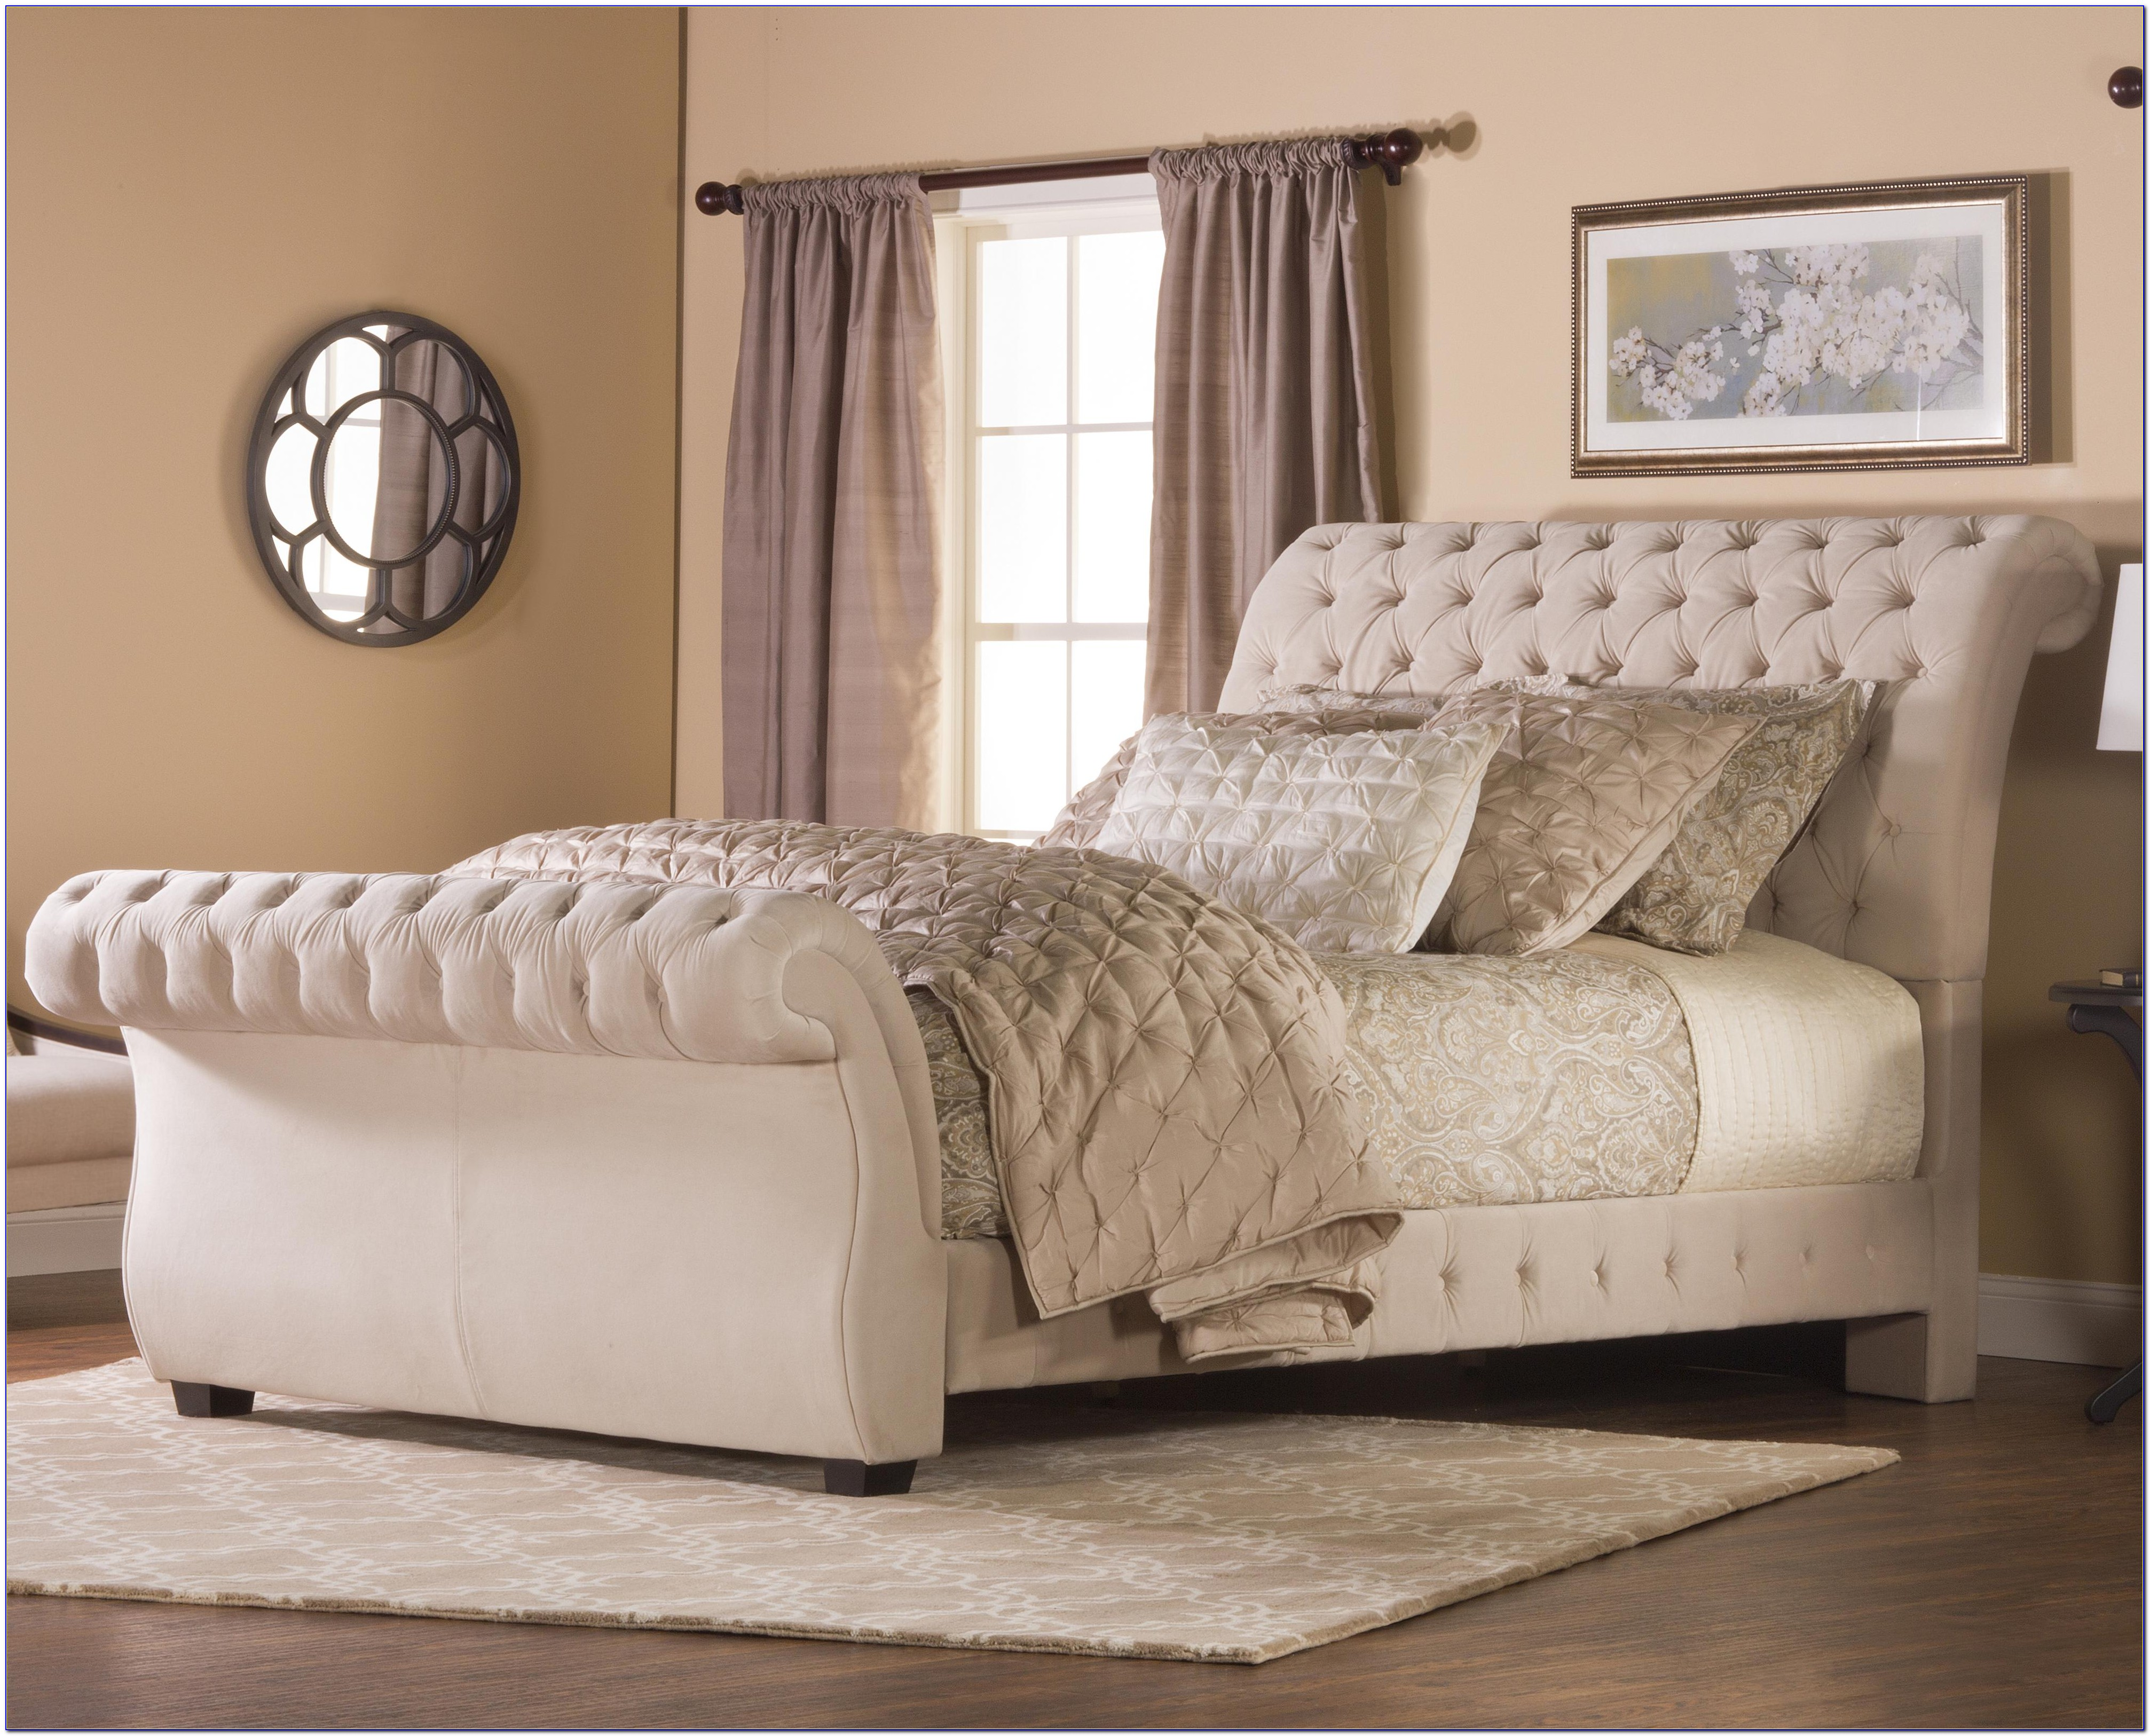 White Upholstered King Size Headboard